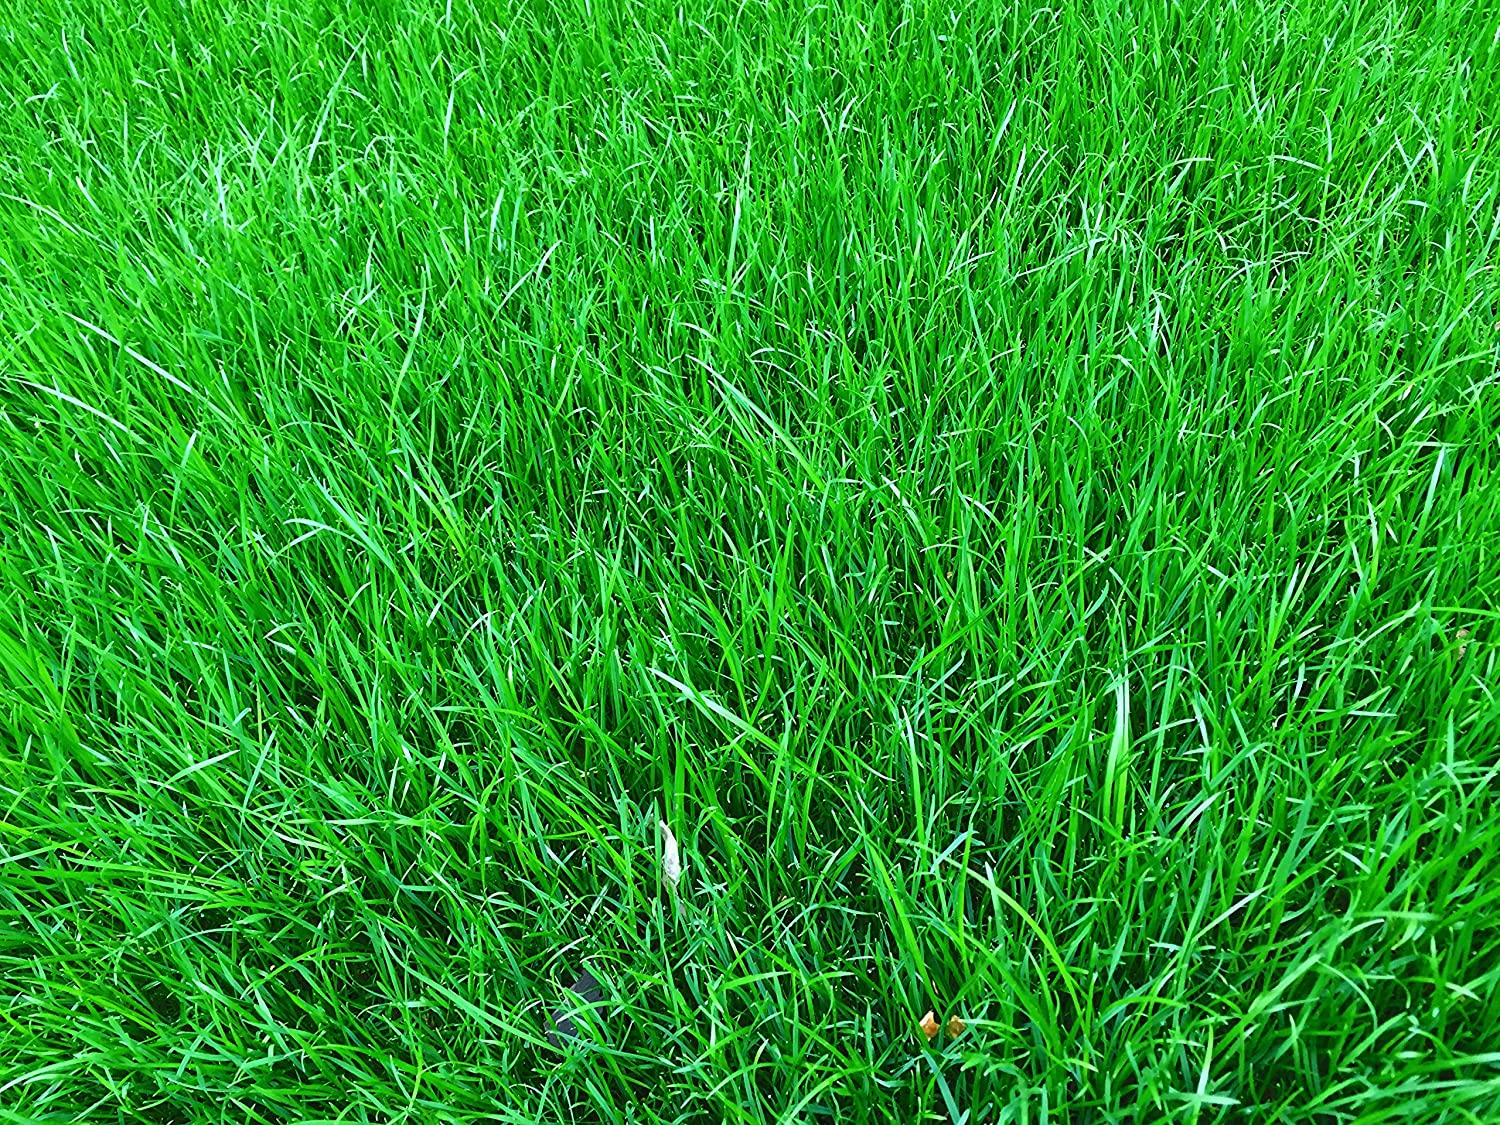 Best way to plant grass seed - 1 Kg Grass Seed Covers 35 Sqm 380 Sq Ft Premium Quality Seed Fast Growing Hard Wearing Lawn Seed Tailored To Uk Climate Trademark Registered